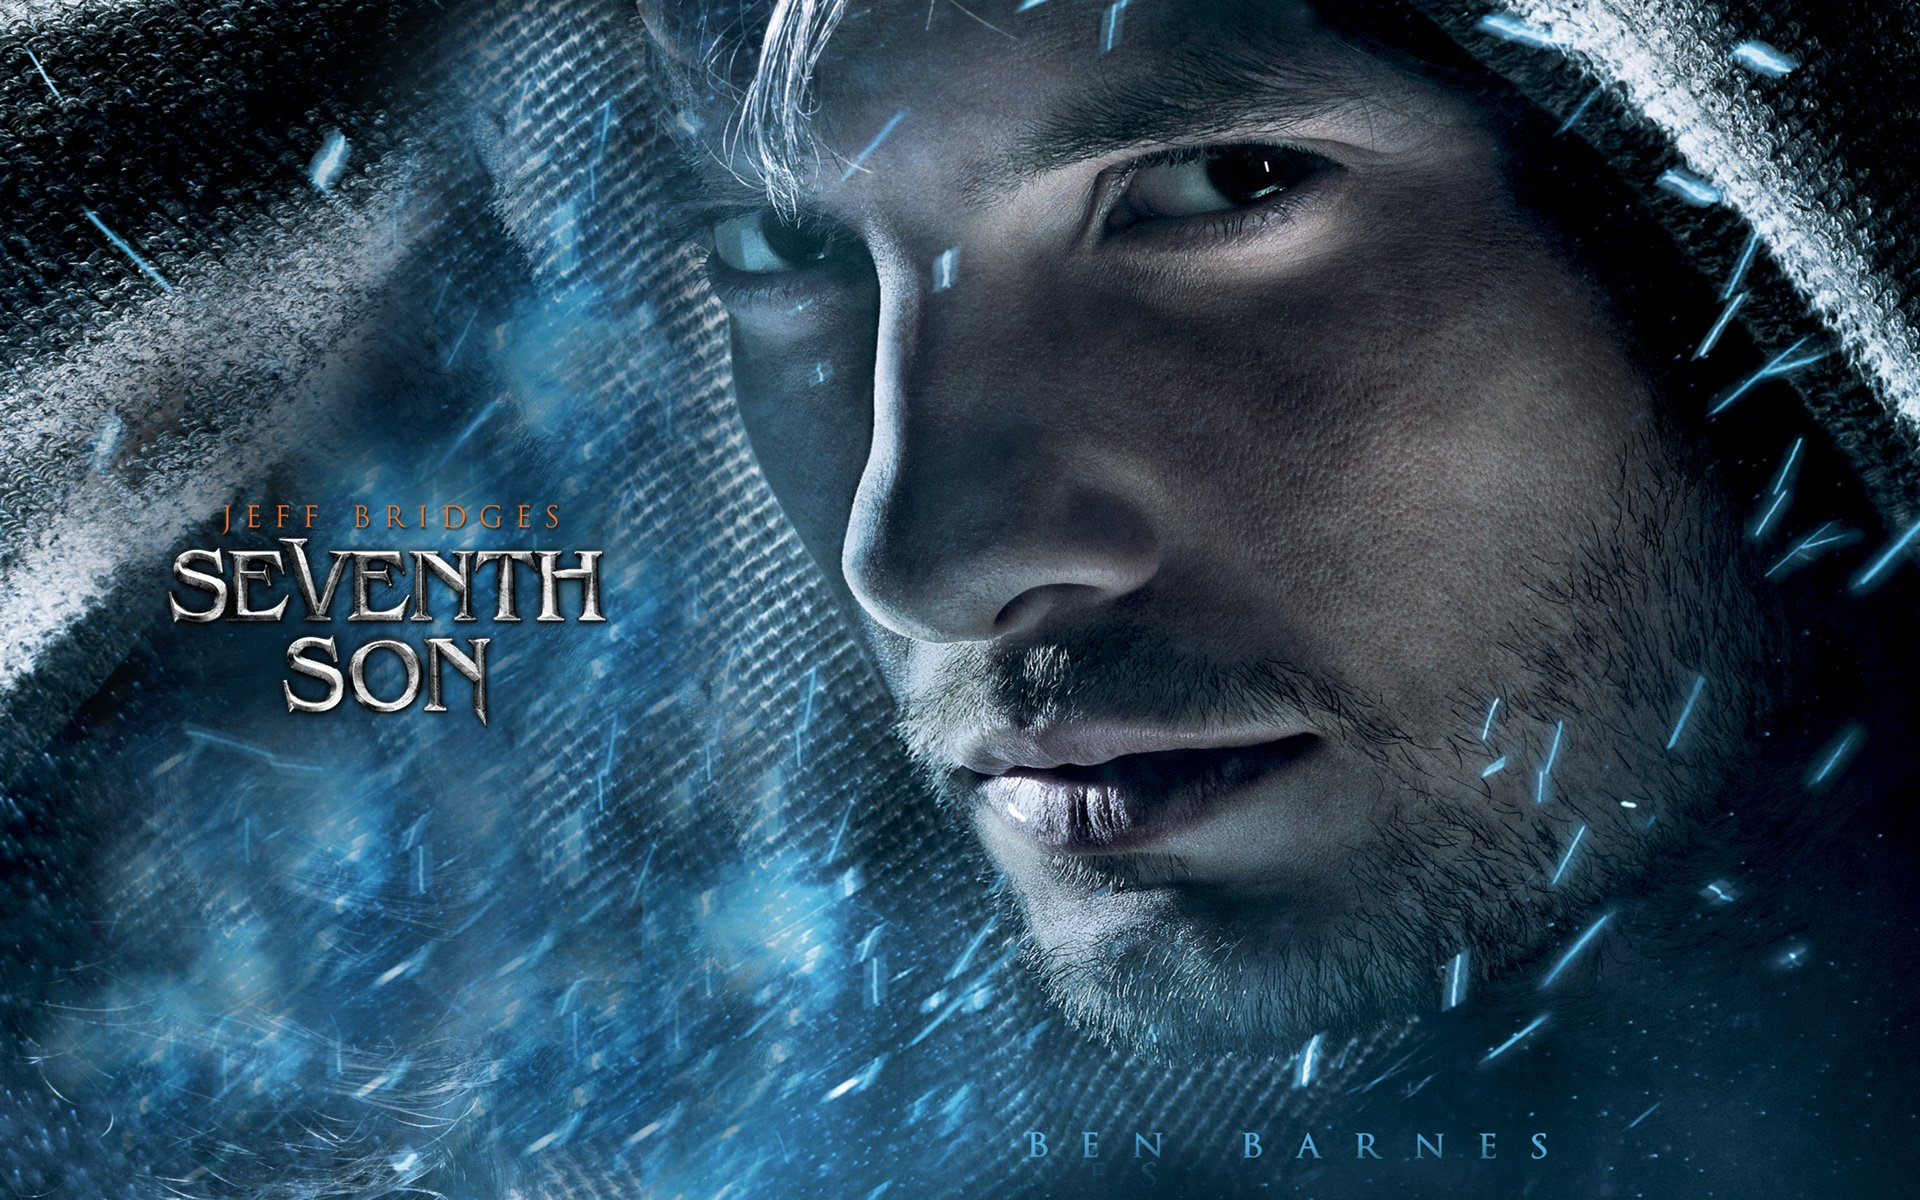 Ben Barnes Seventh Son Movie Wallpaper Fondo De Pantalla Hd